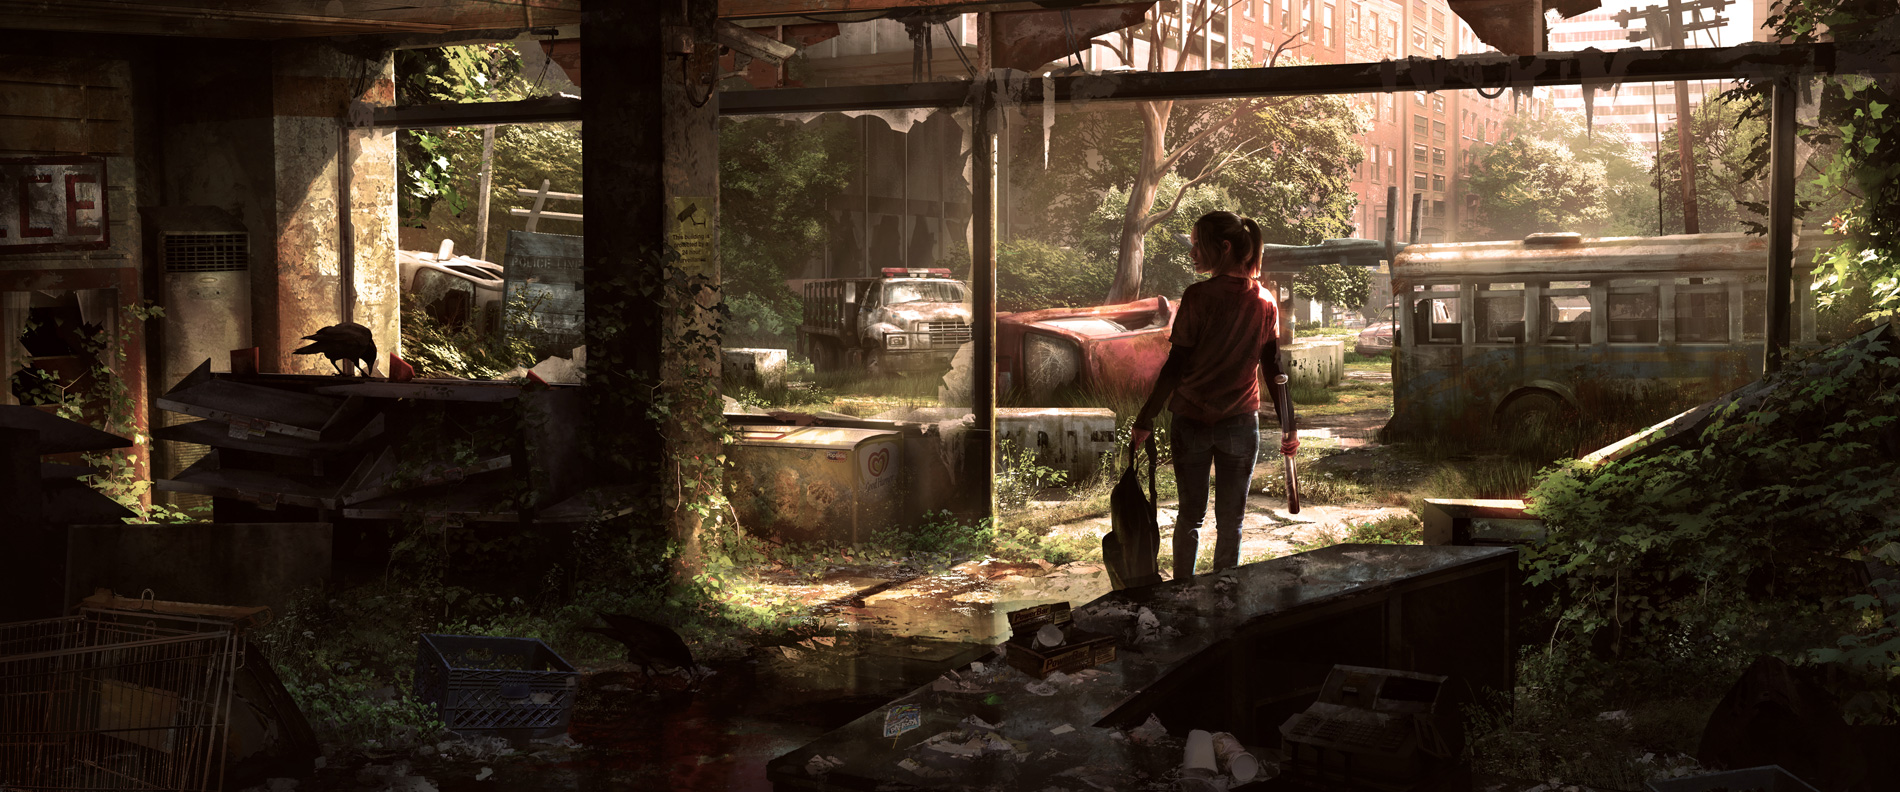 [عکس: The_Last_of_Us_Concept_Art_Crows_JS-01.jpg]